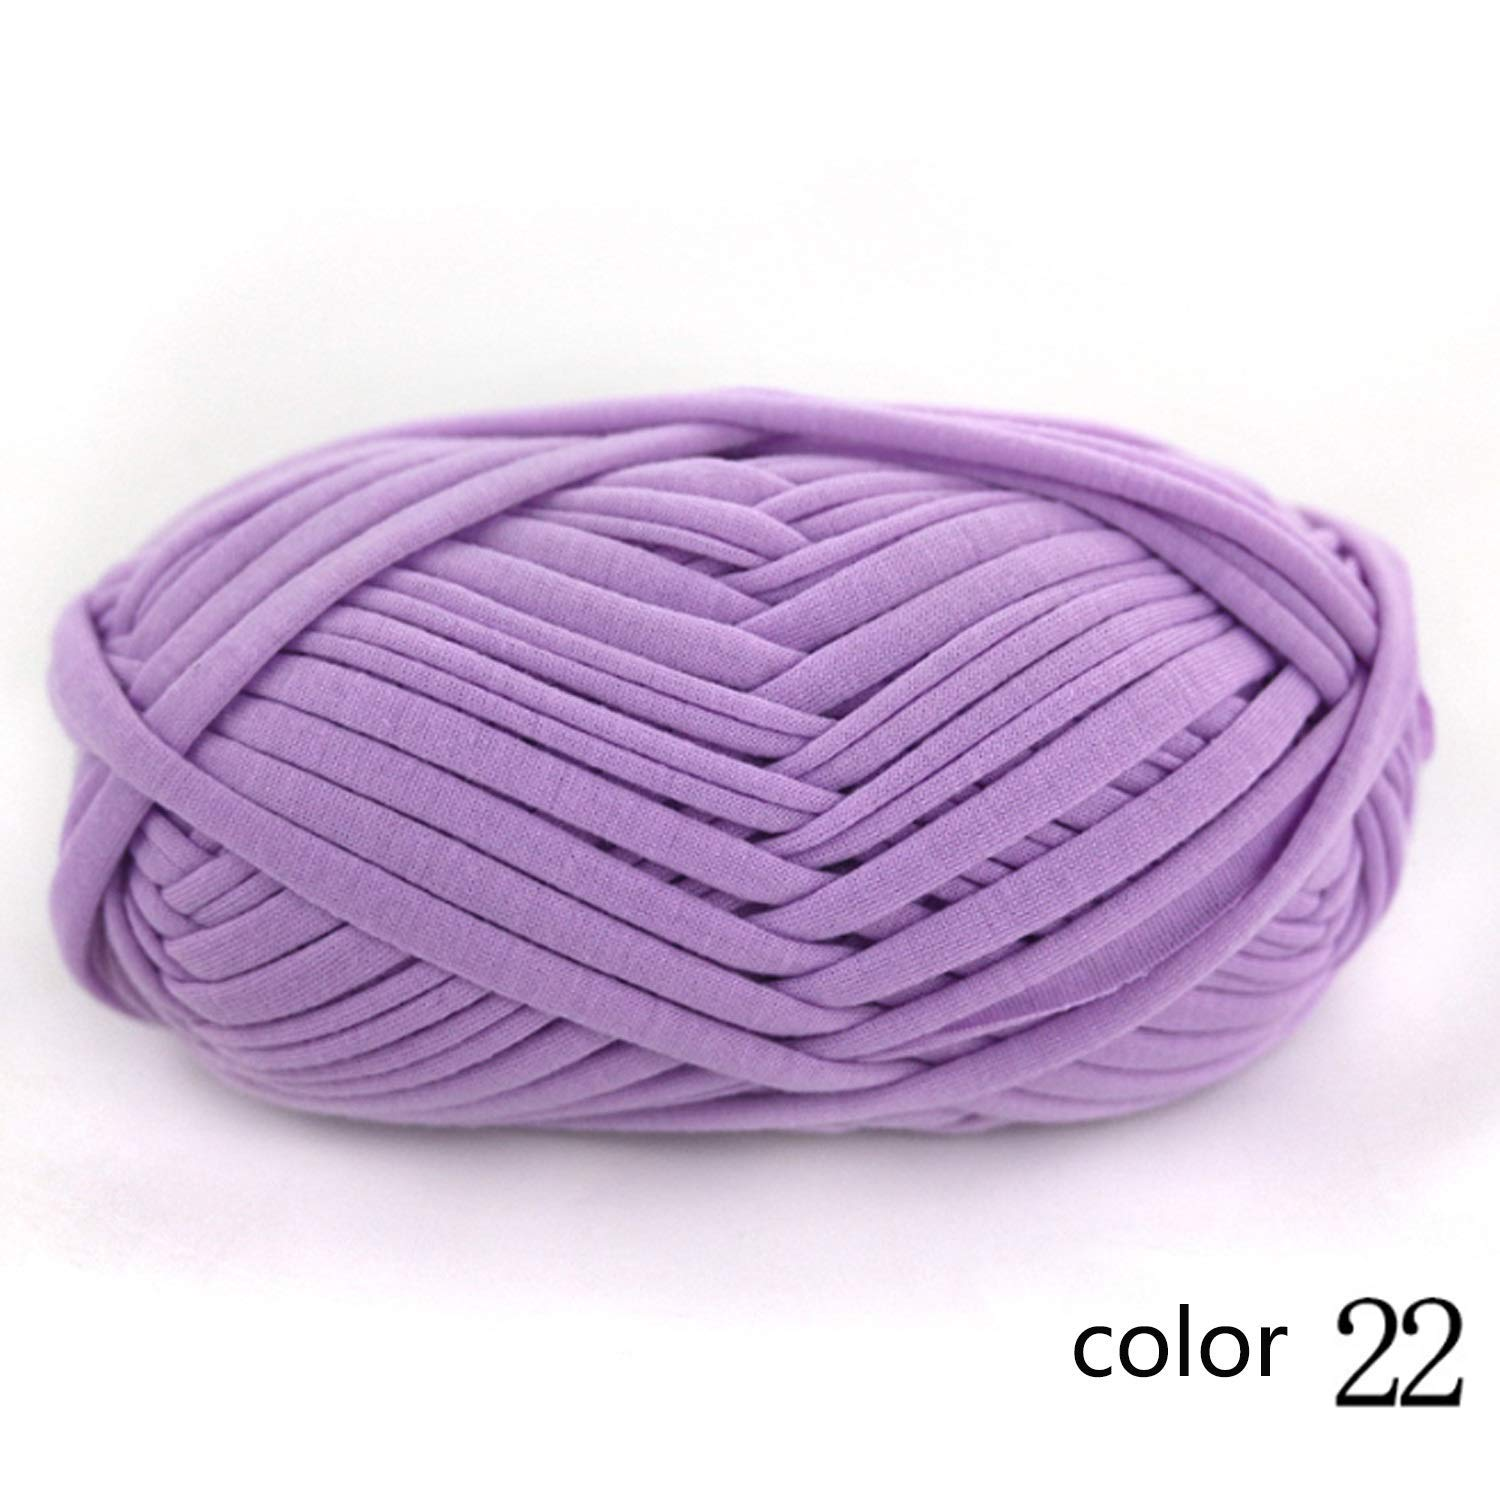 Col 22 1KG JINSH Yarn knitting yarn wiring wire hand woven floor mat DIY cloth Packet line carpet thread 1 0.3 NM 1 ball about 100 g 10 multicolor selection possible (color   Col 20, Size   1KG)